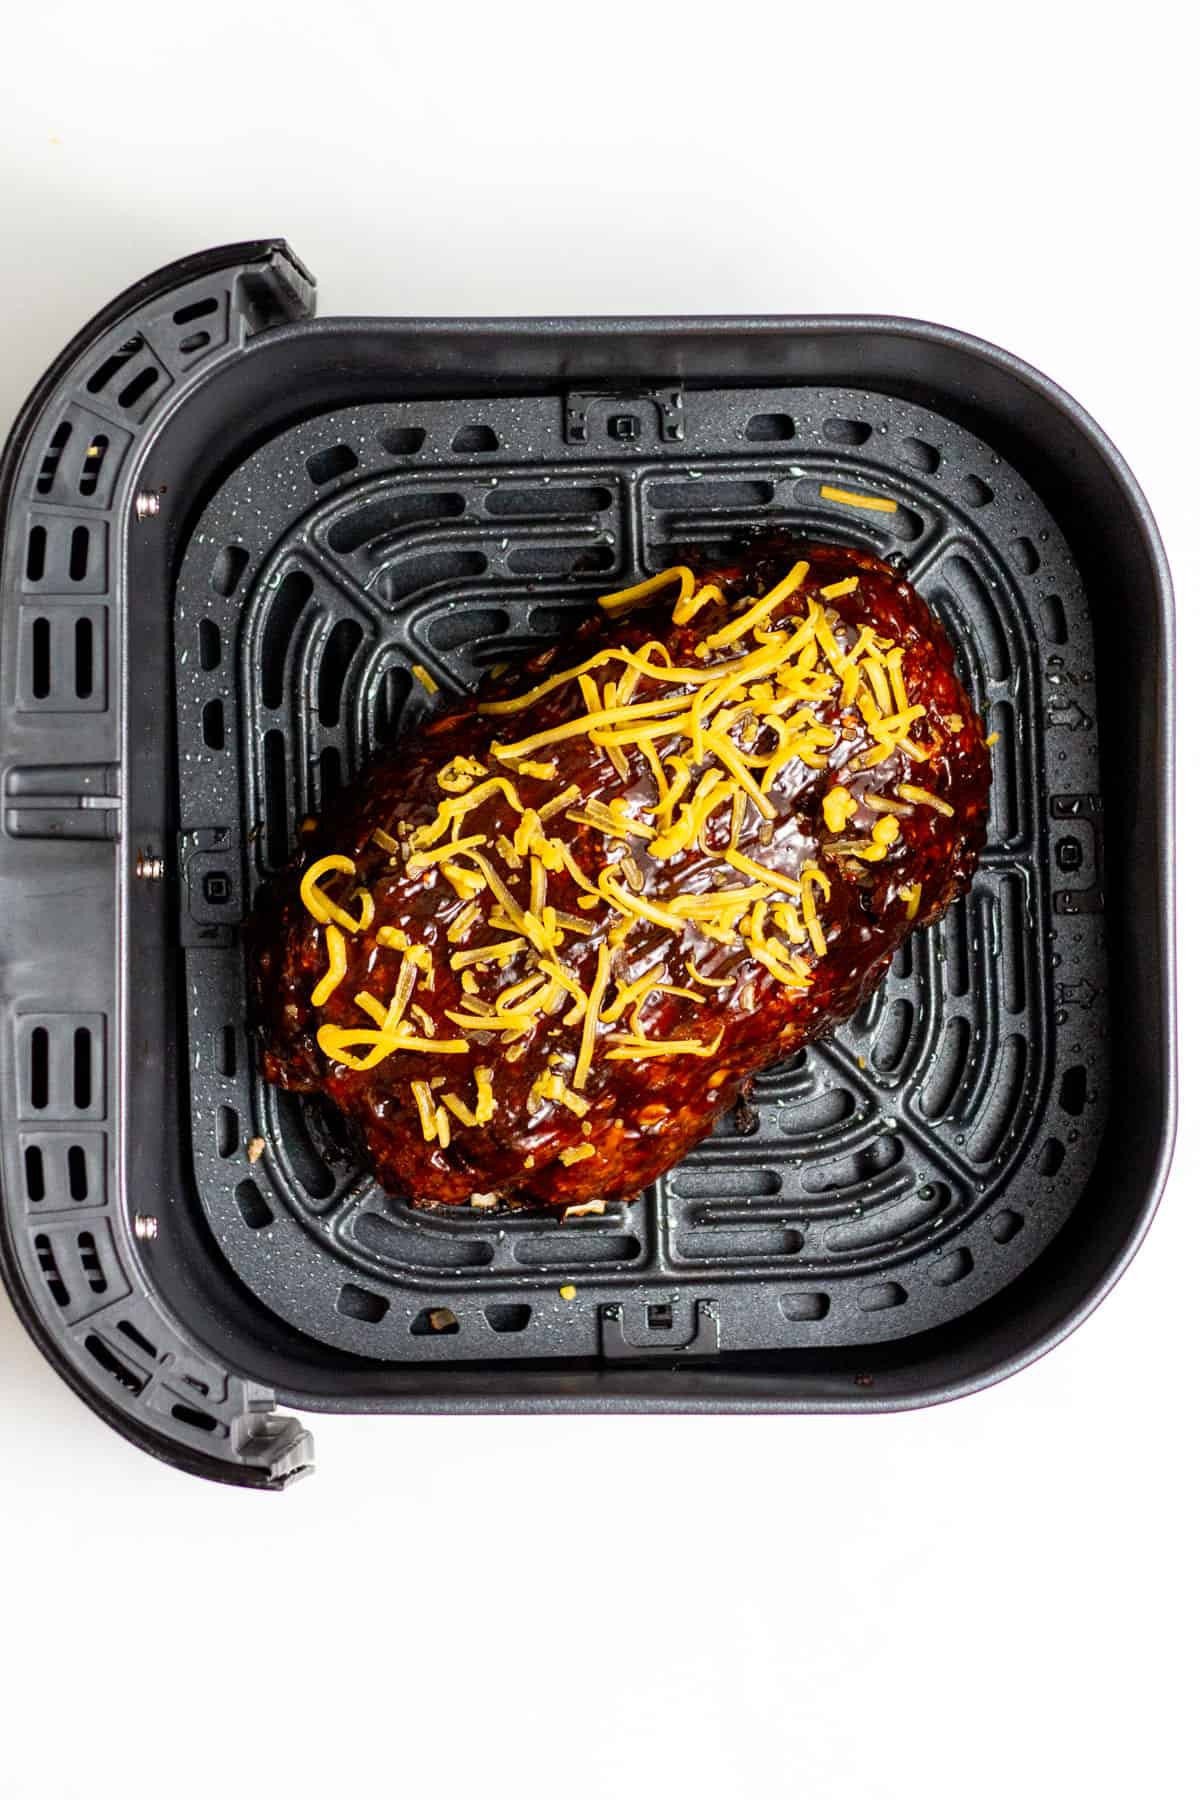 meatloaf brushed with glaze and topped with cheddar cheese